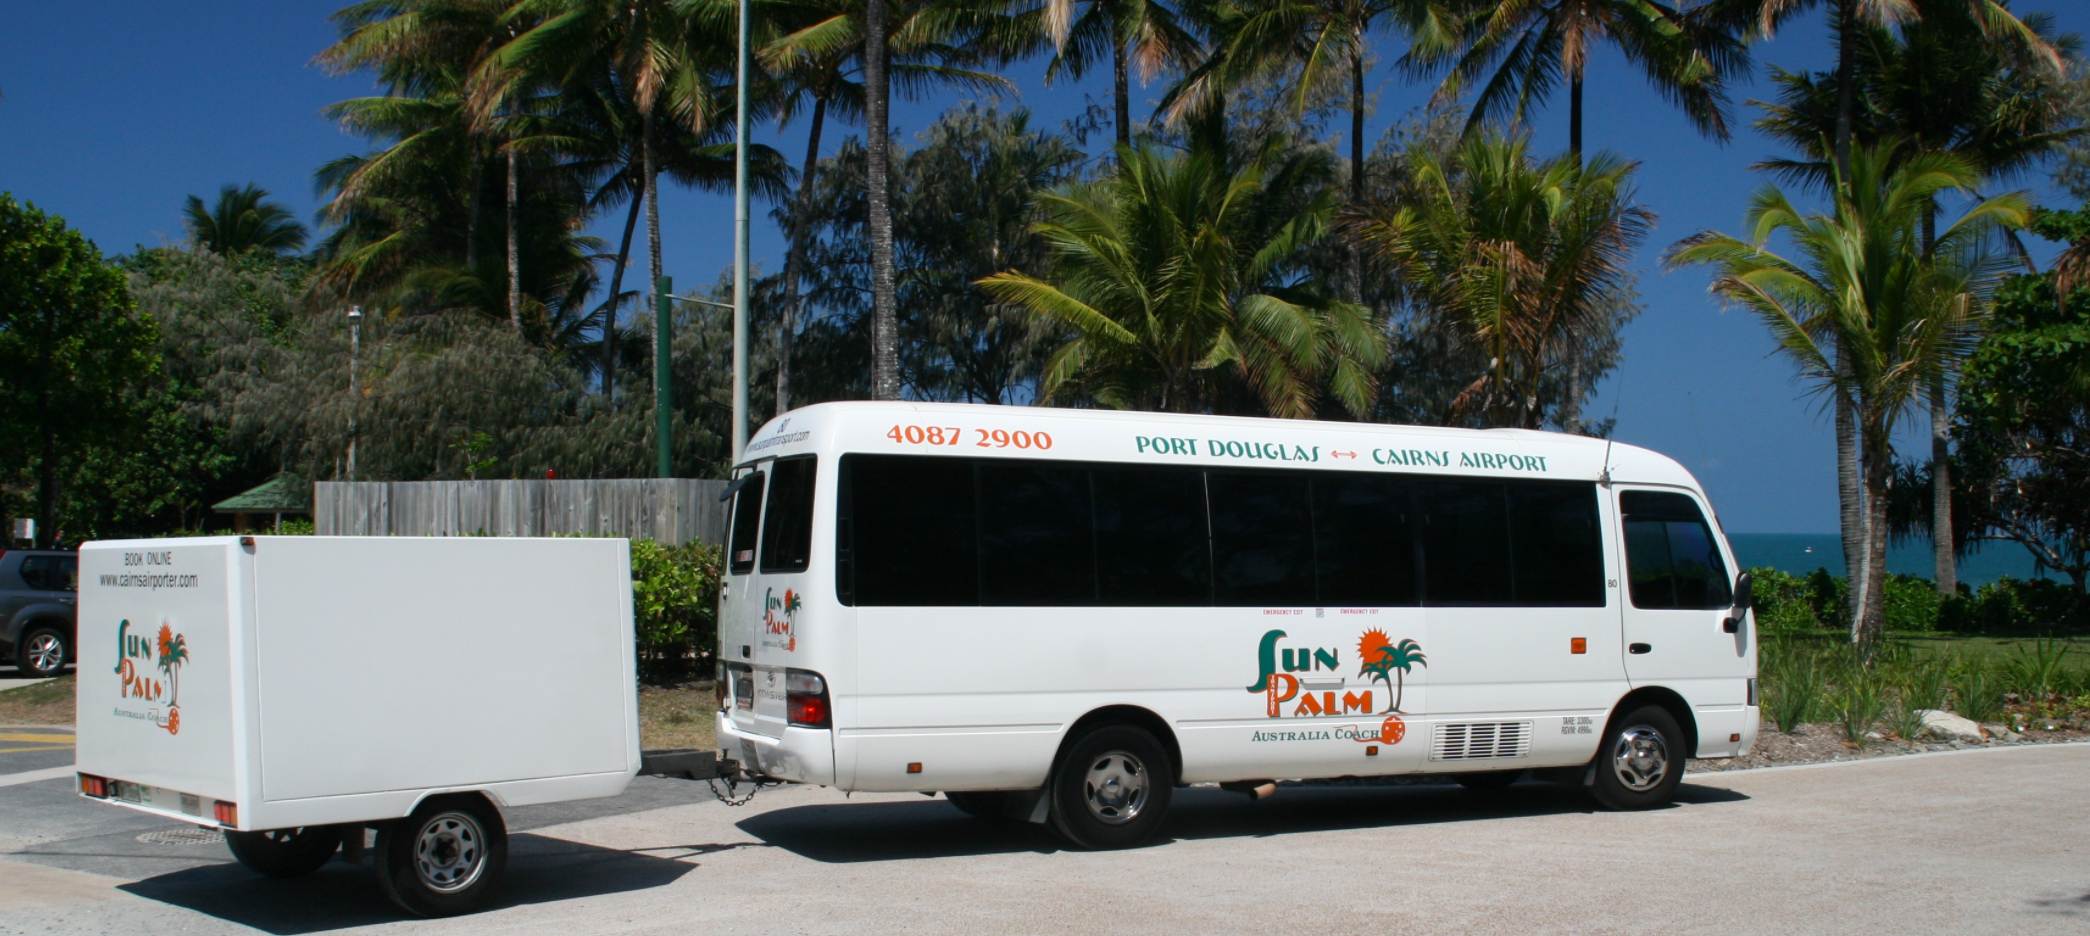 Sun Palm Transport Group service photo